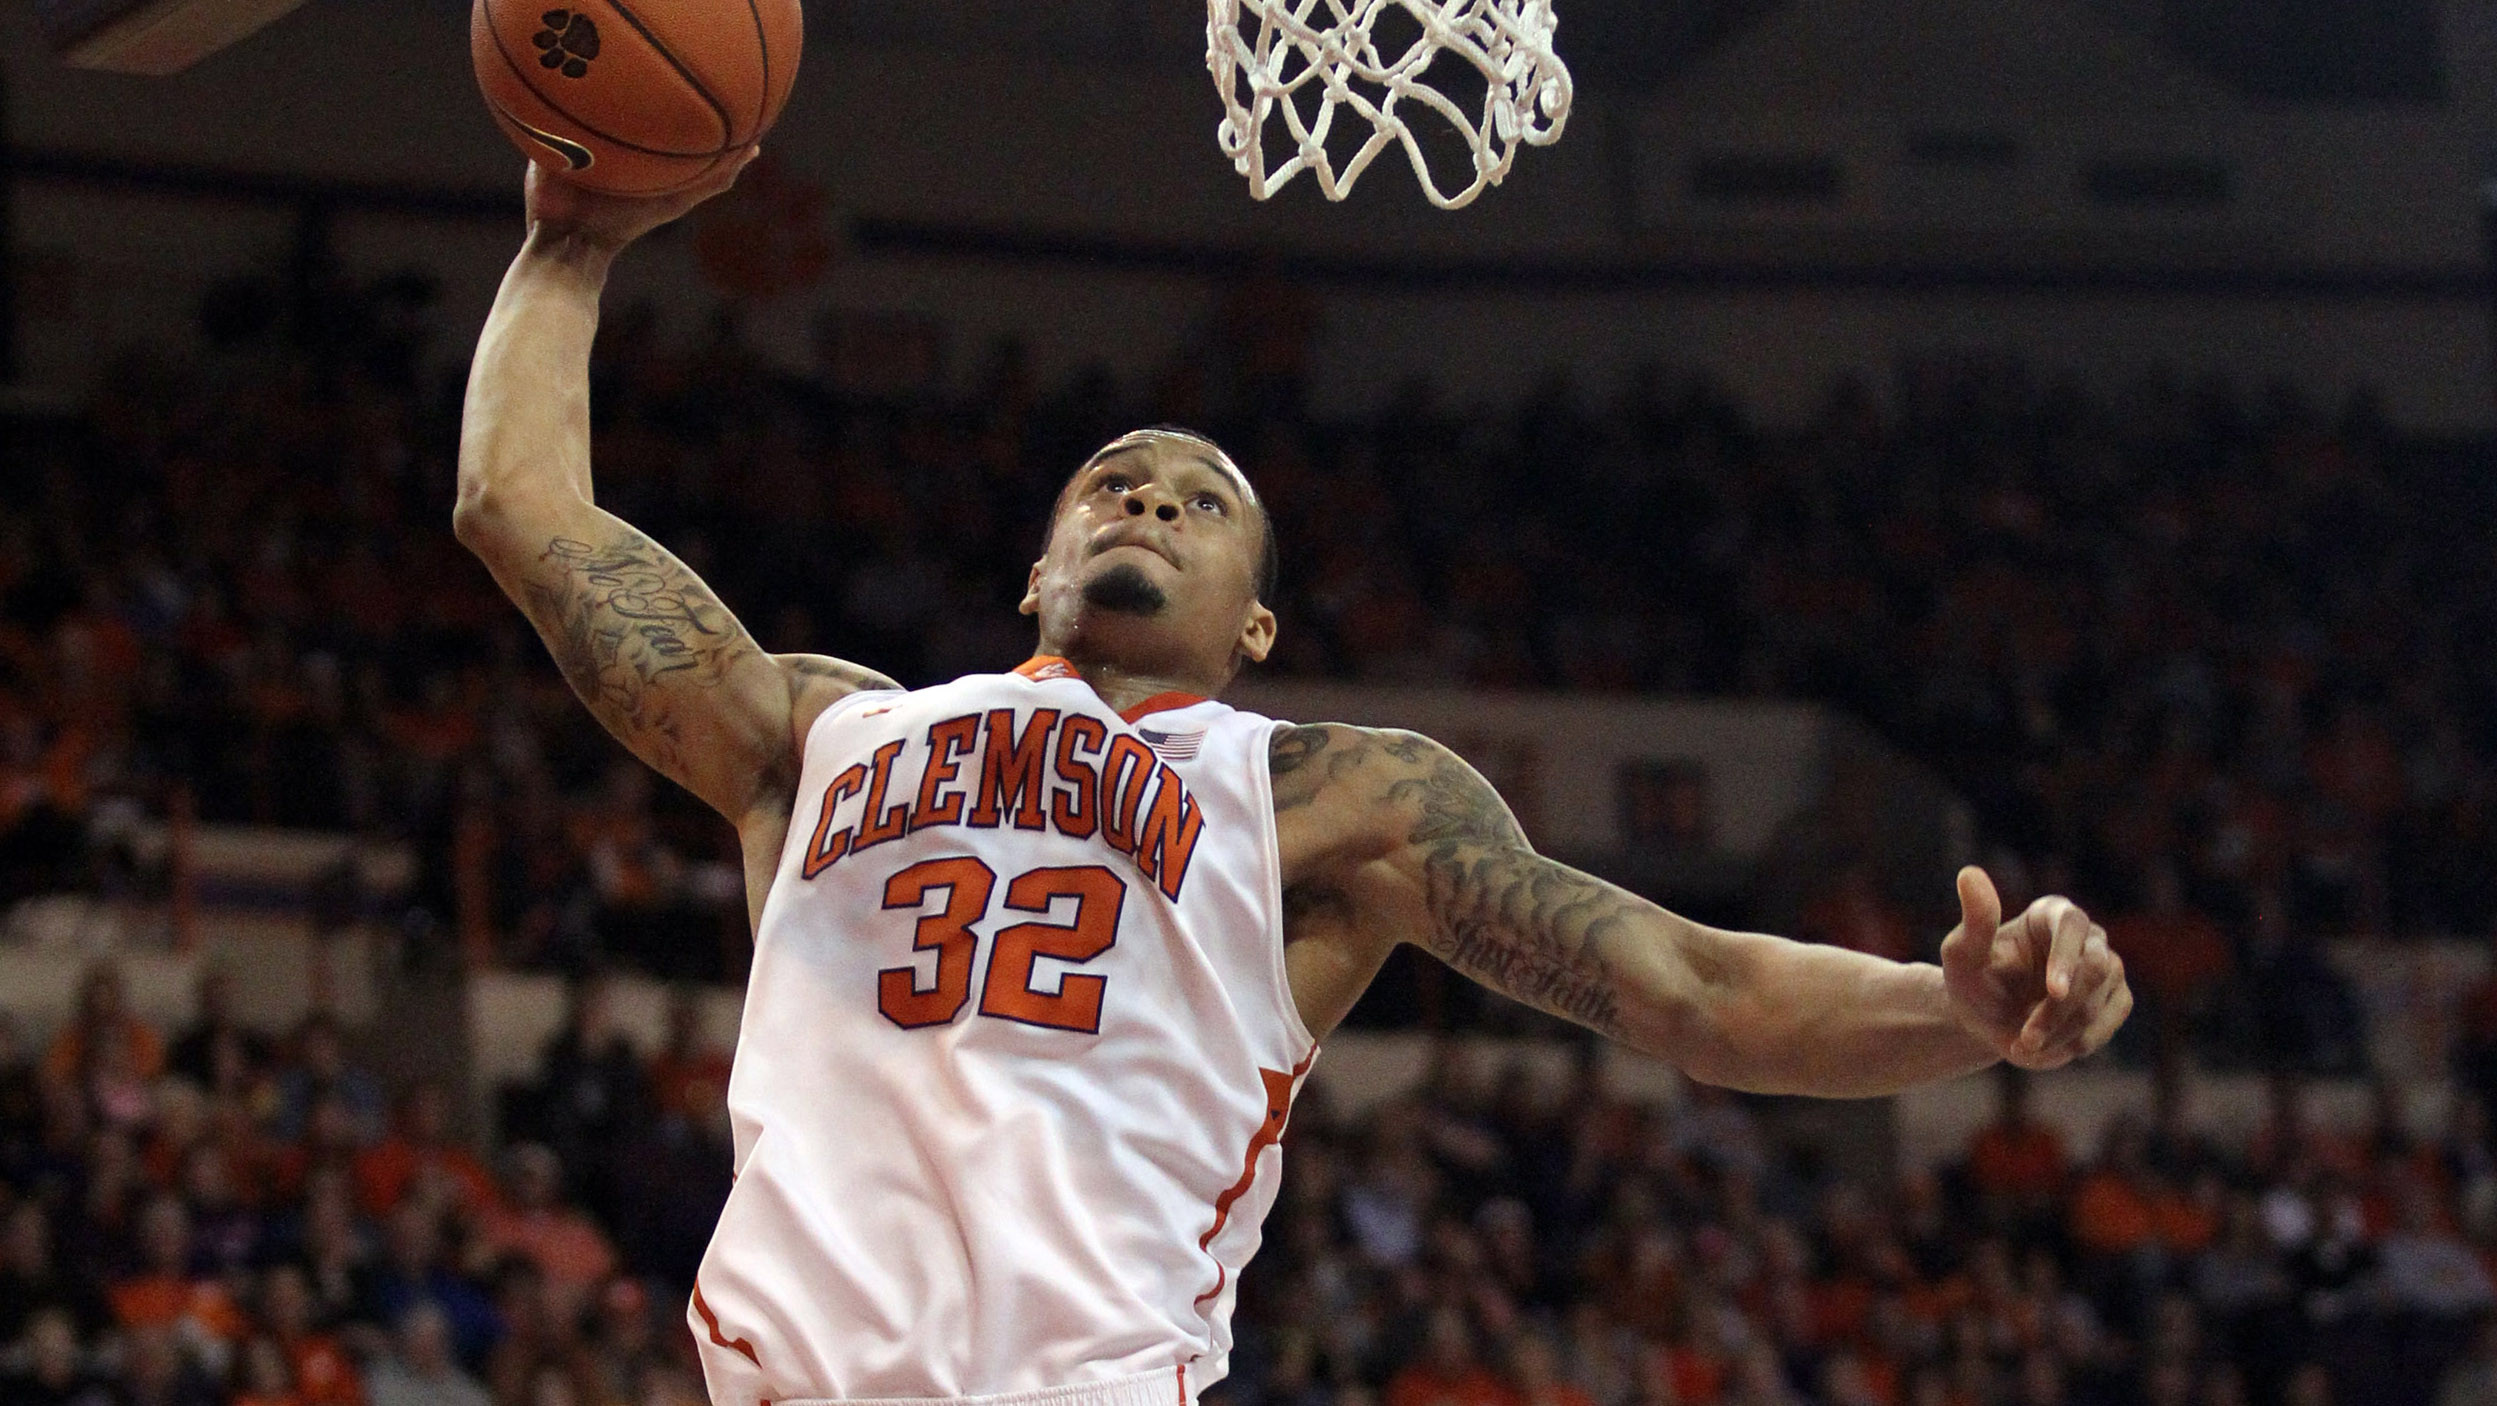 Clemson Moves to 4-1 in the ACC With 61-53 Victory Over Wake Forest